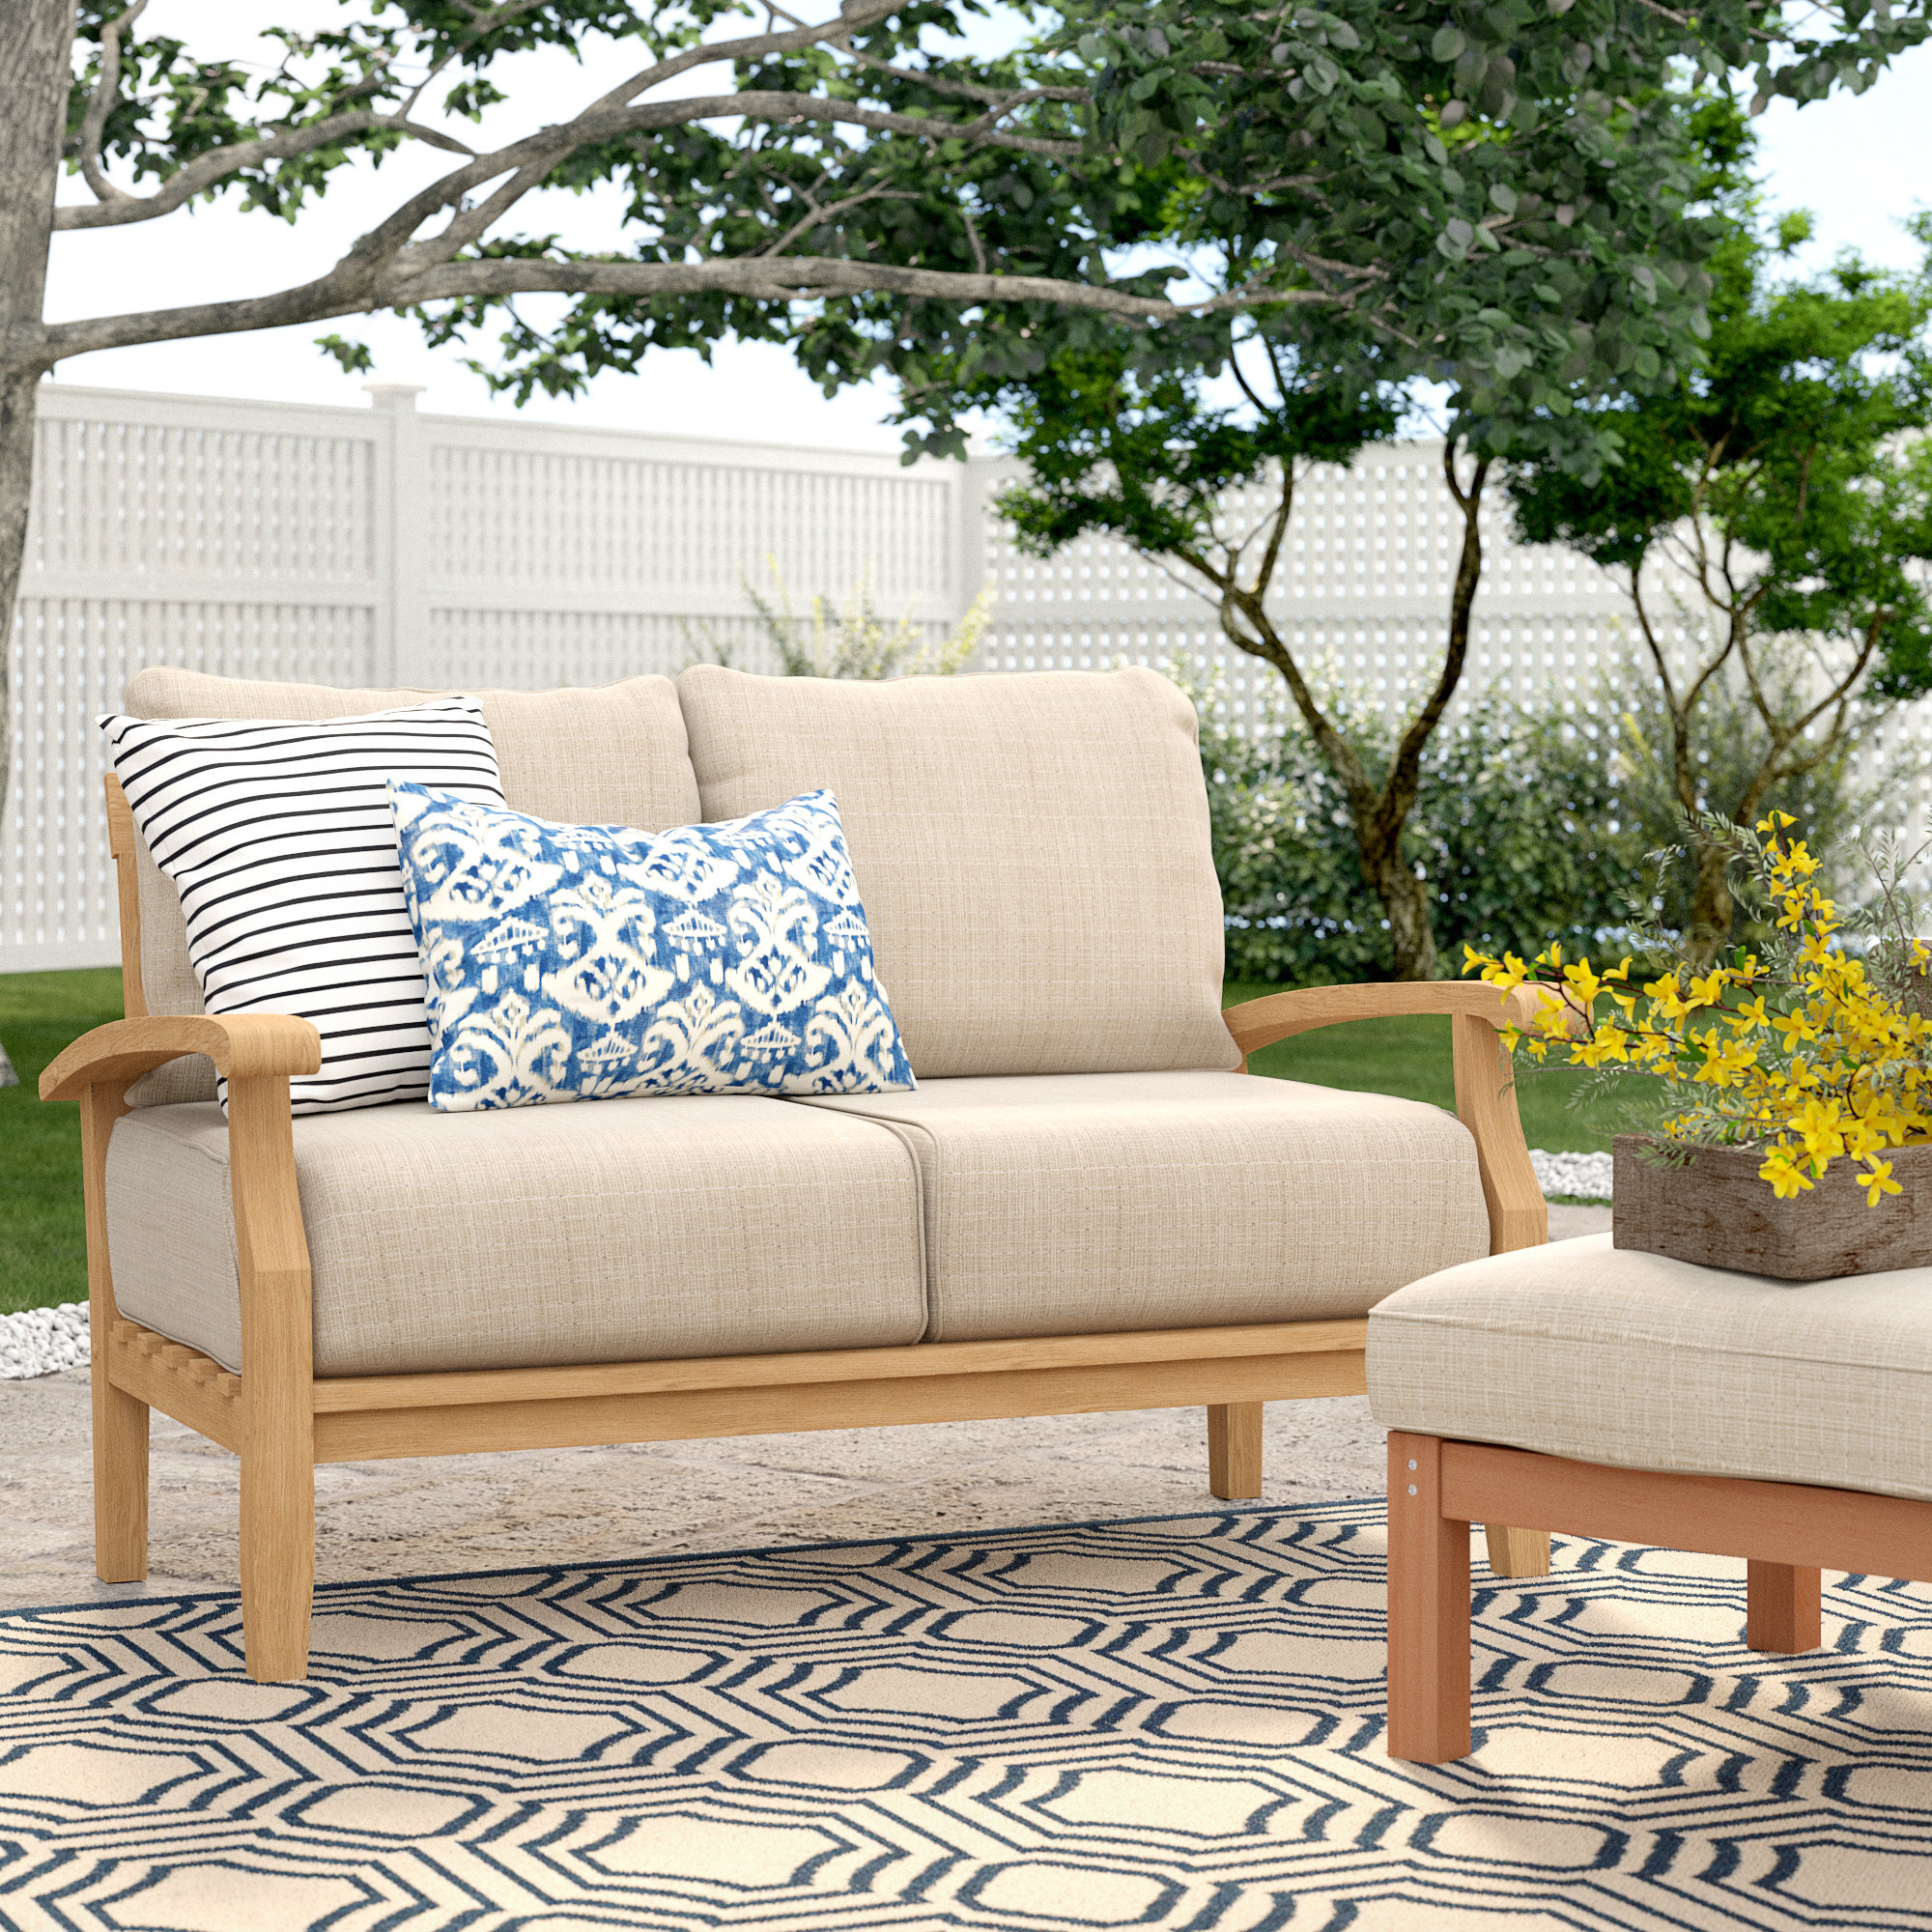 Birch Lane For Most Current Lakeland Teak Patio Sofas With Cushions (View 5 of 20)